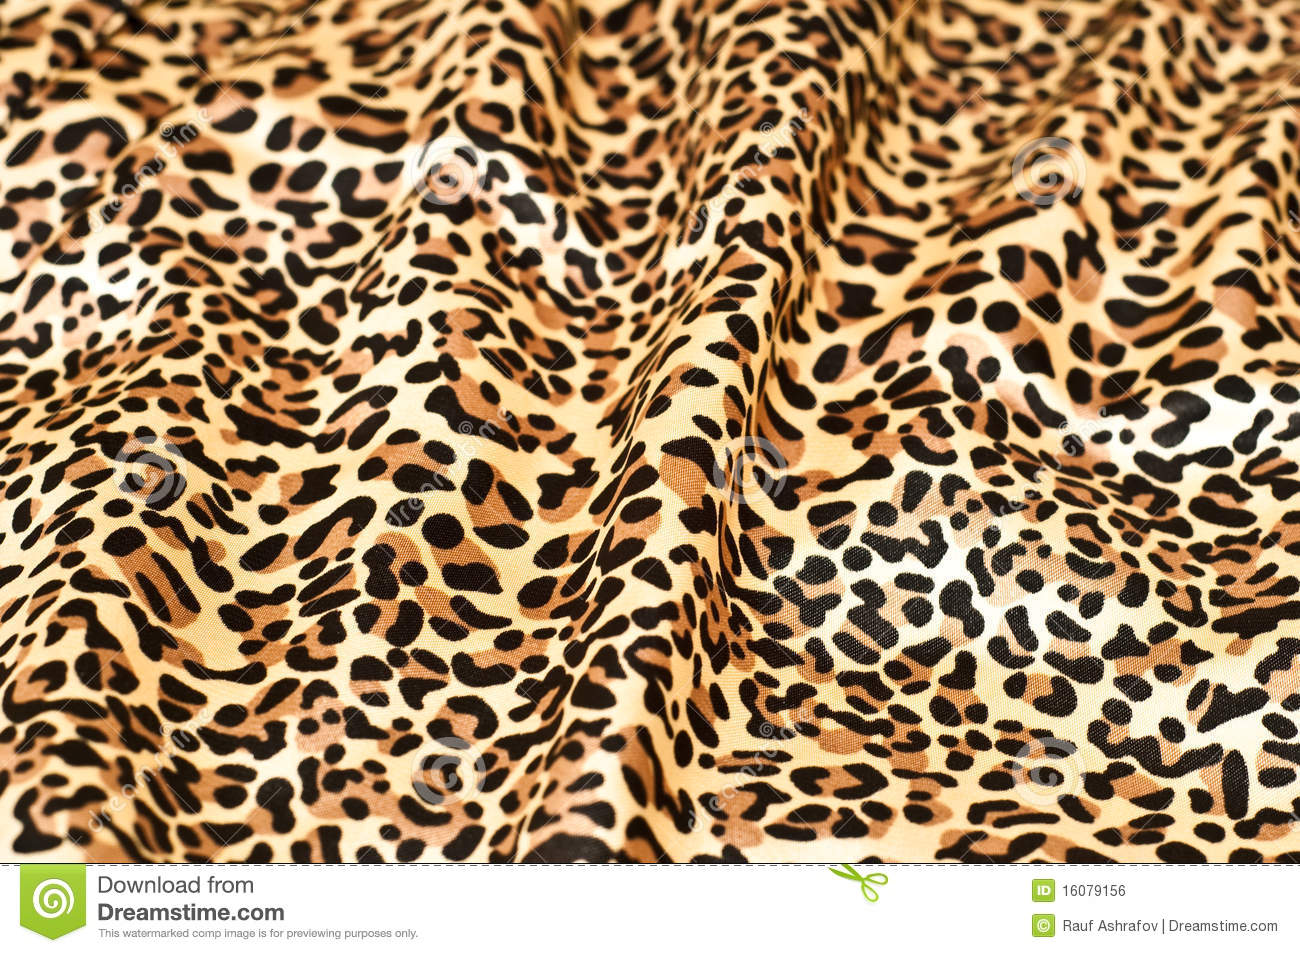 Decorative Leopard Skin Textured Wallpaper Royalty Free